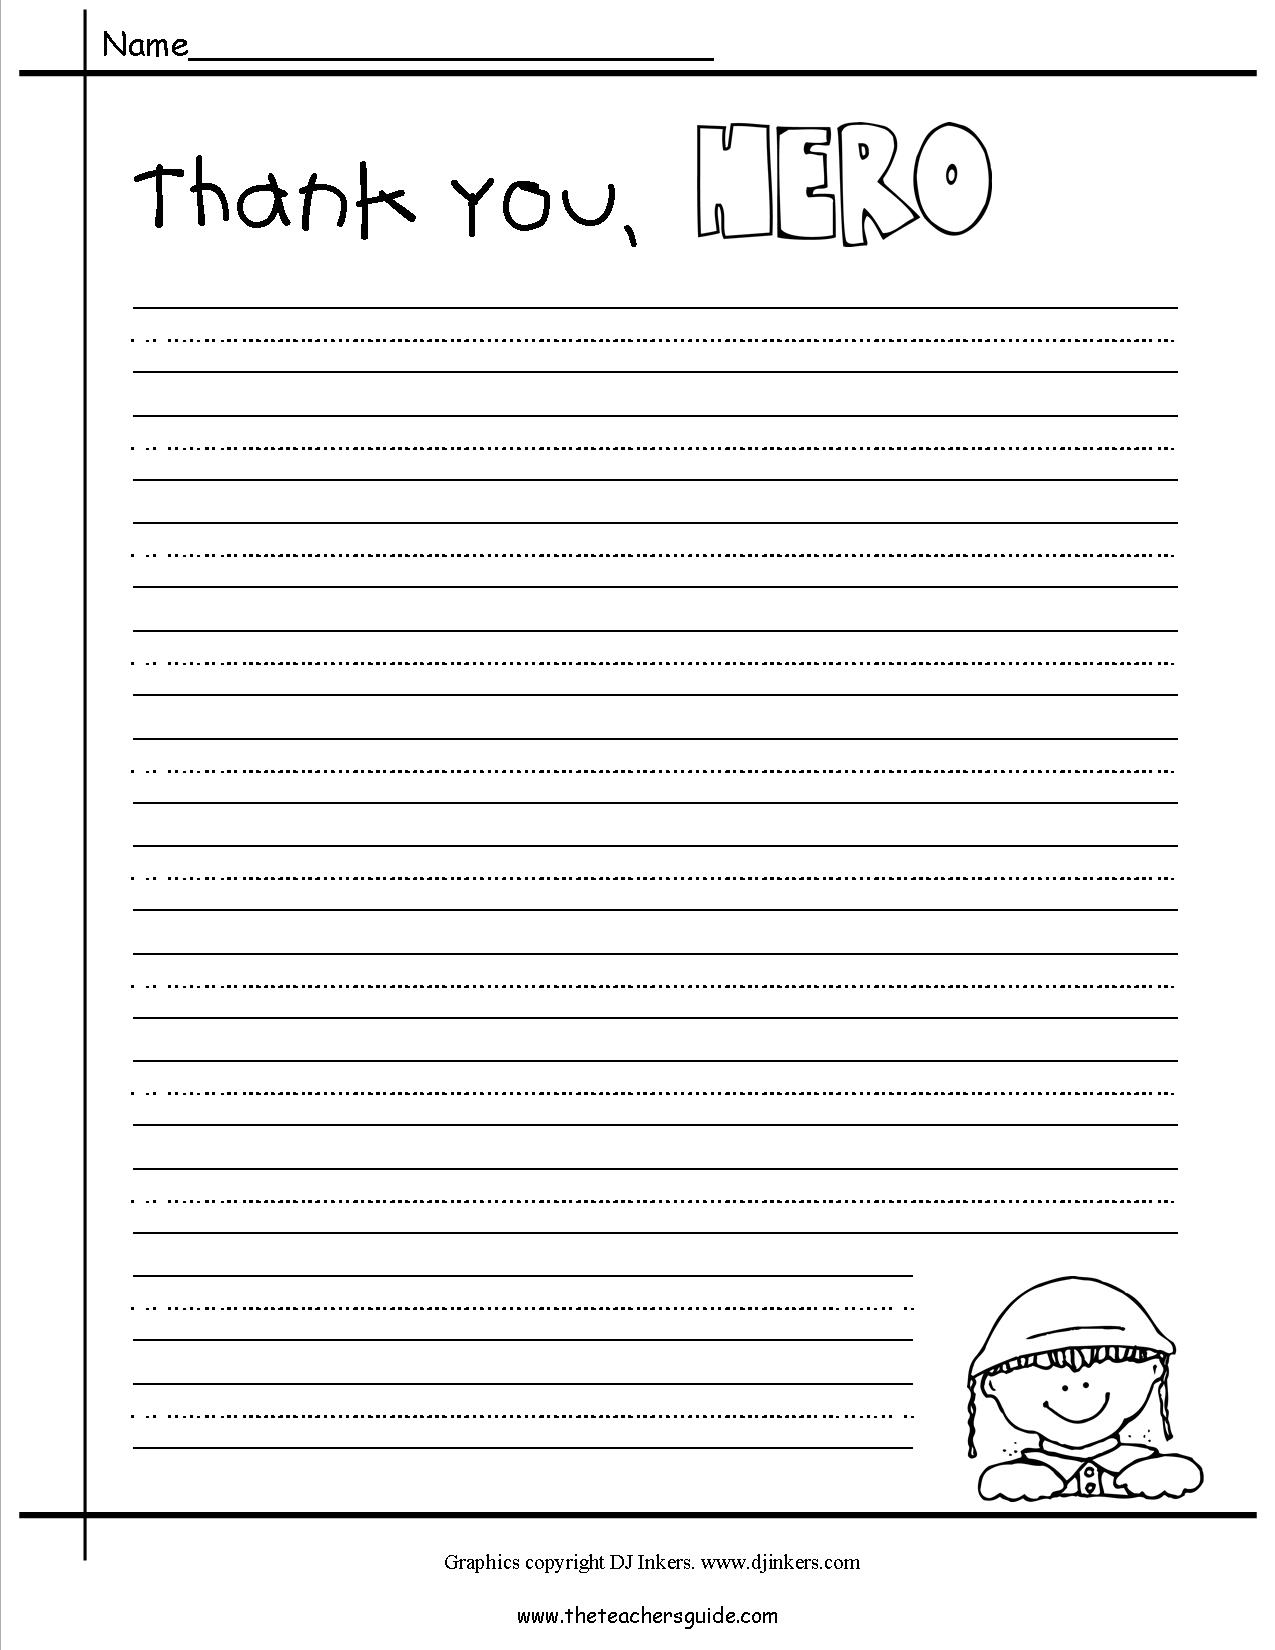 Veterans day thank you letter template examples letter cover templates veterans day thank you letter template veteran thank you letter image collections letter format formal thecheapjerseys Choice Image